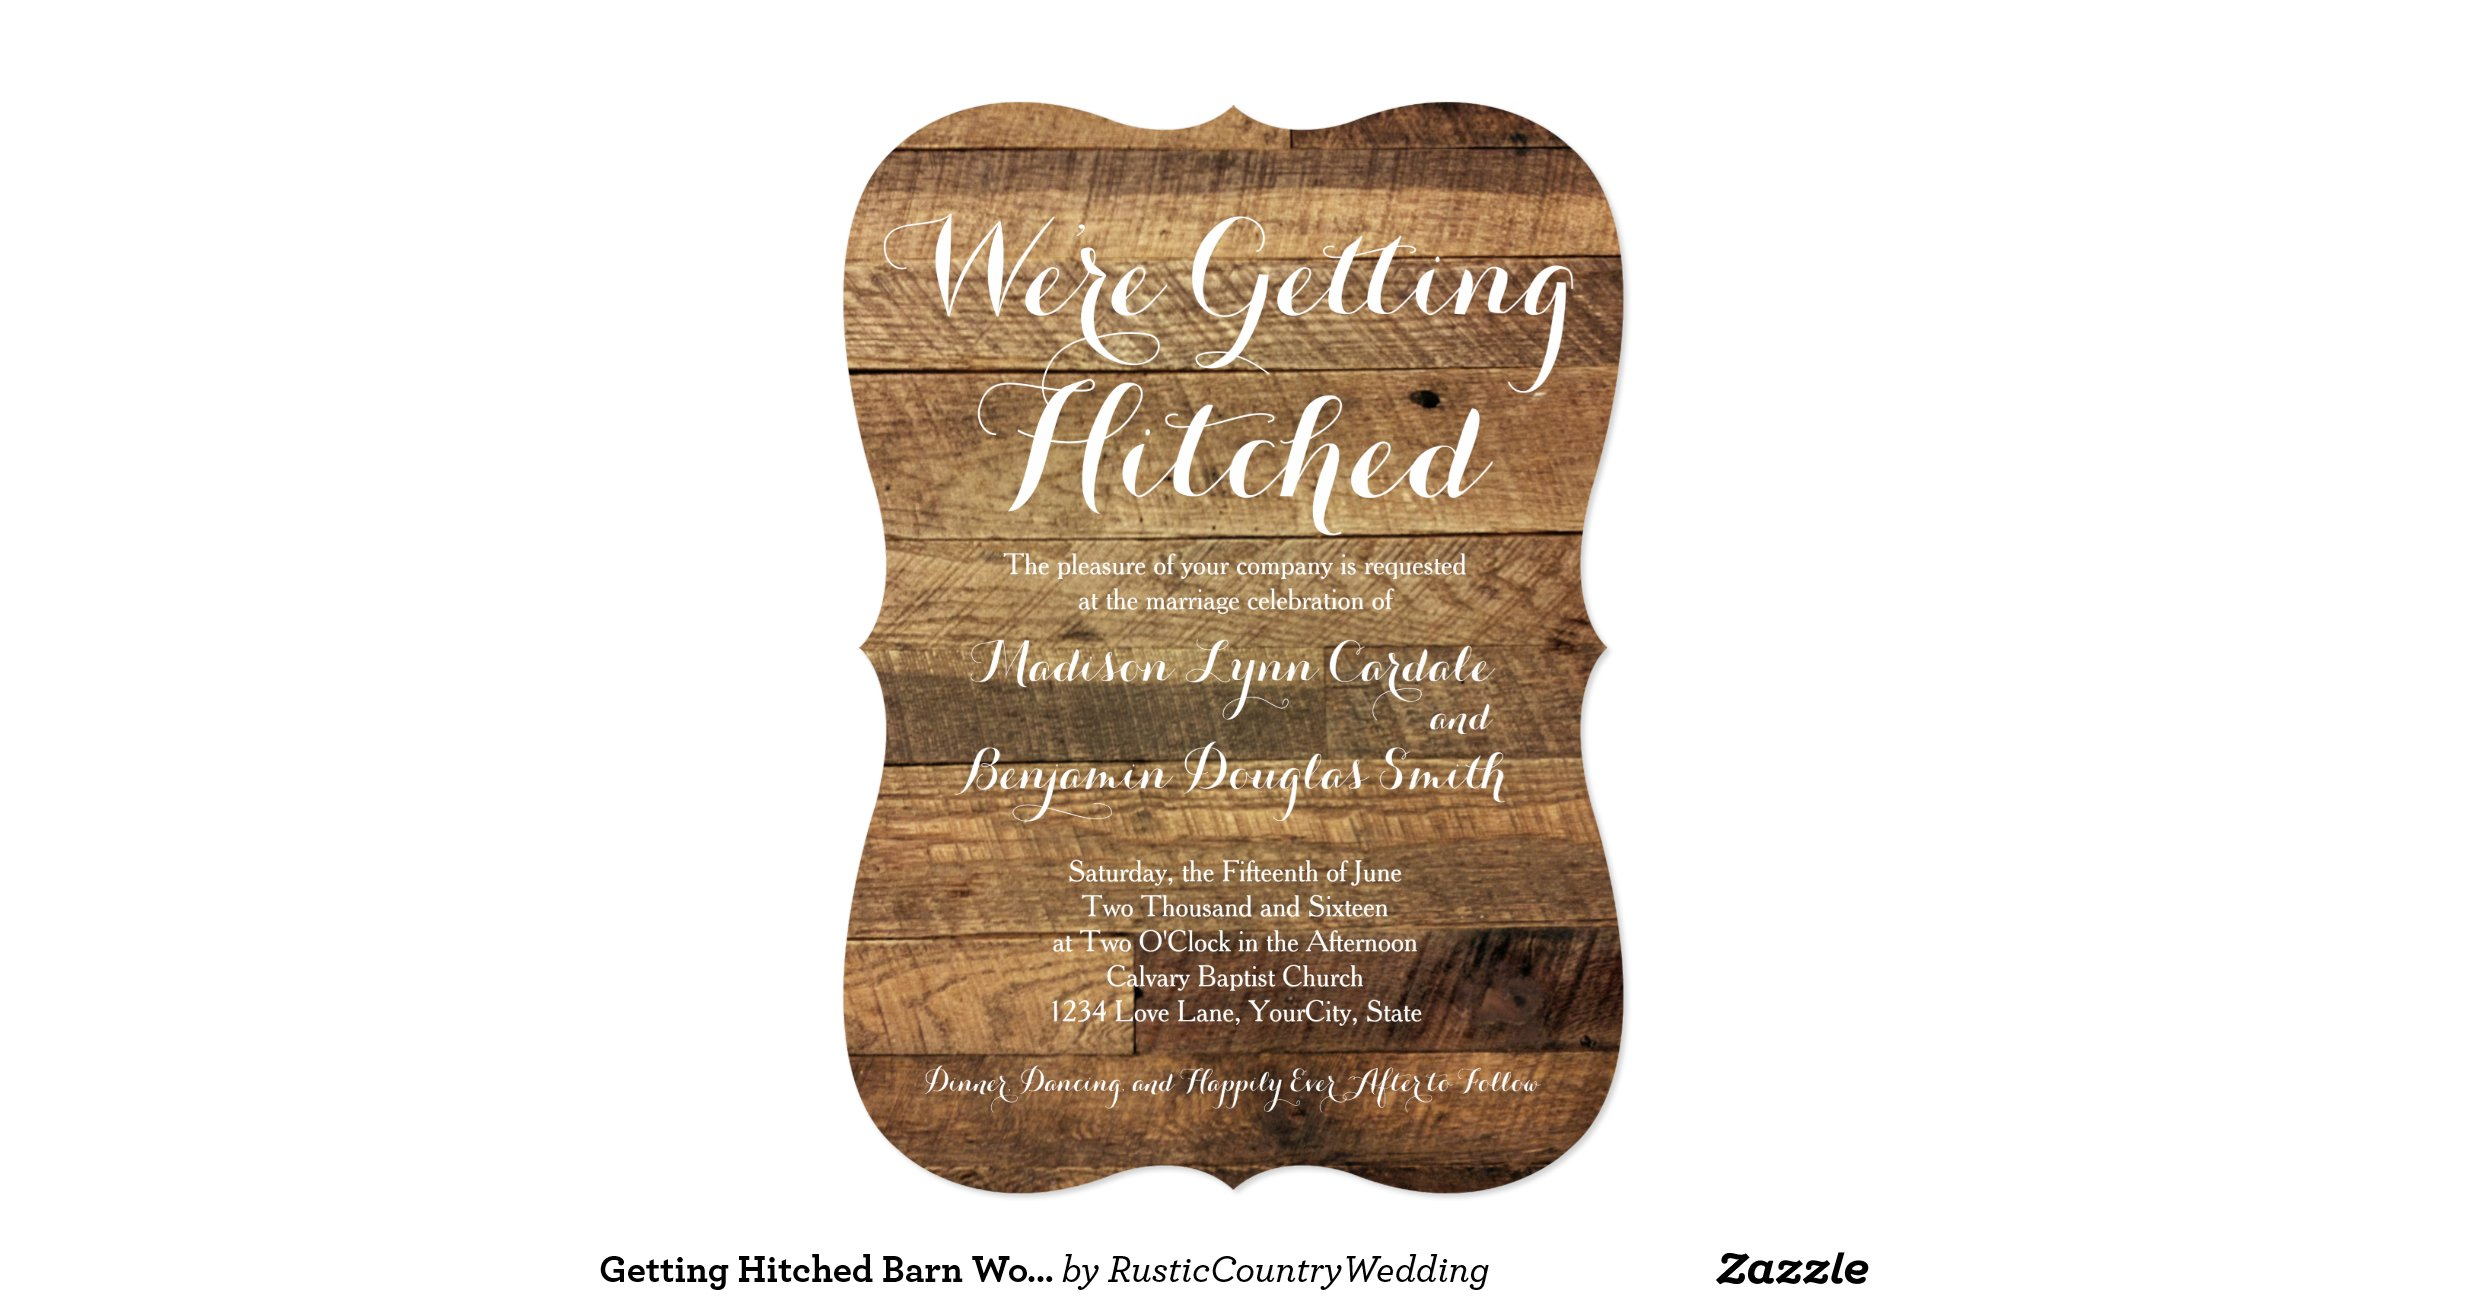 Hitched Wedding Invitations: Getting_hitched_barn_wood_wedding_invitations